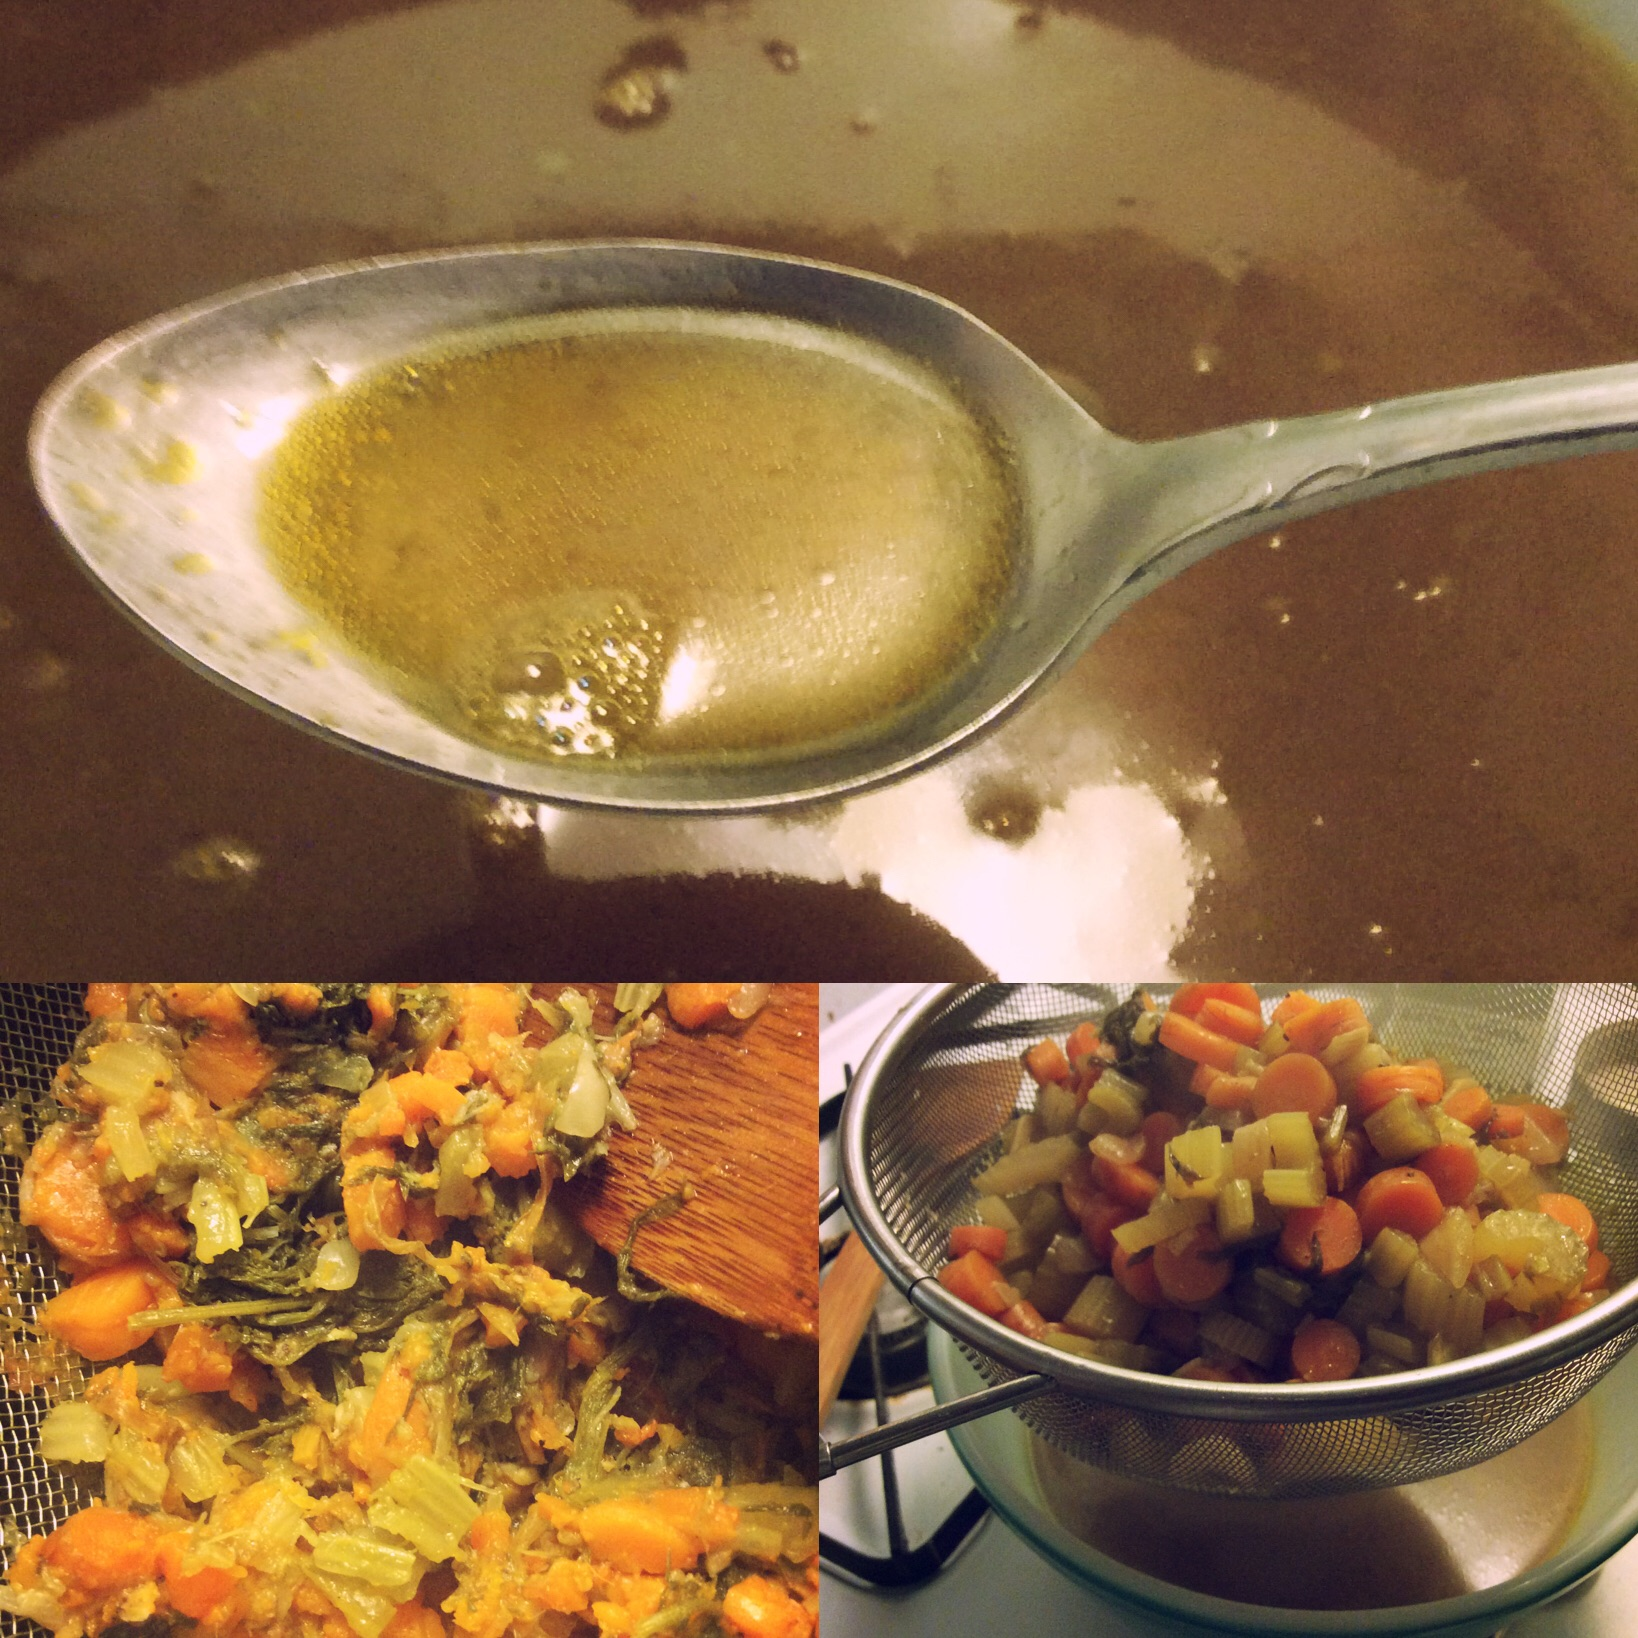 Clockwise from top: Brothy goodness, just starting to strain, pressed veggies.